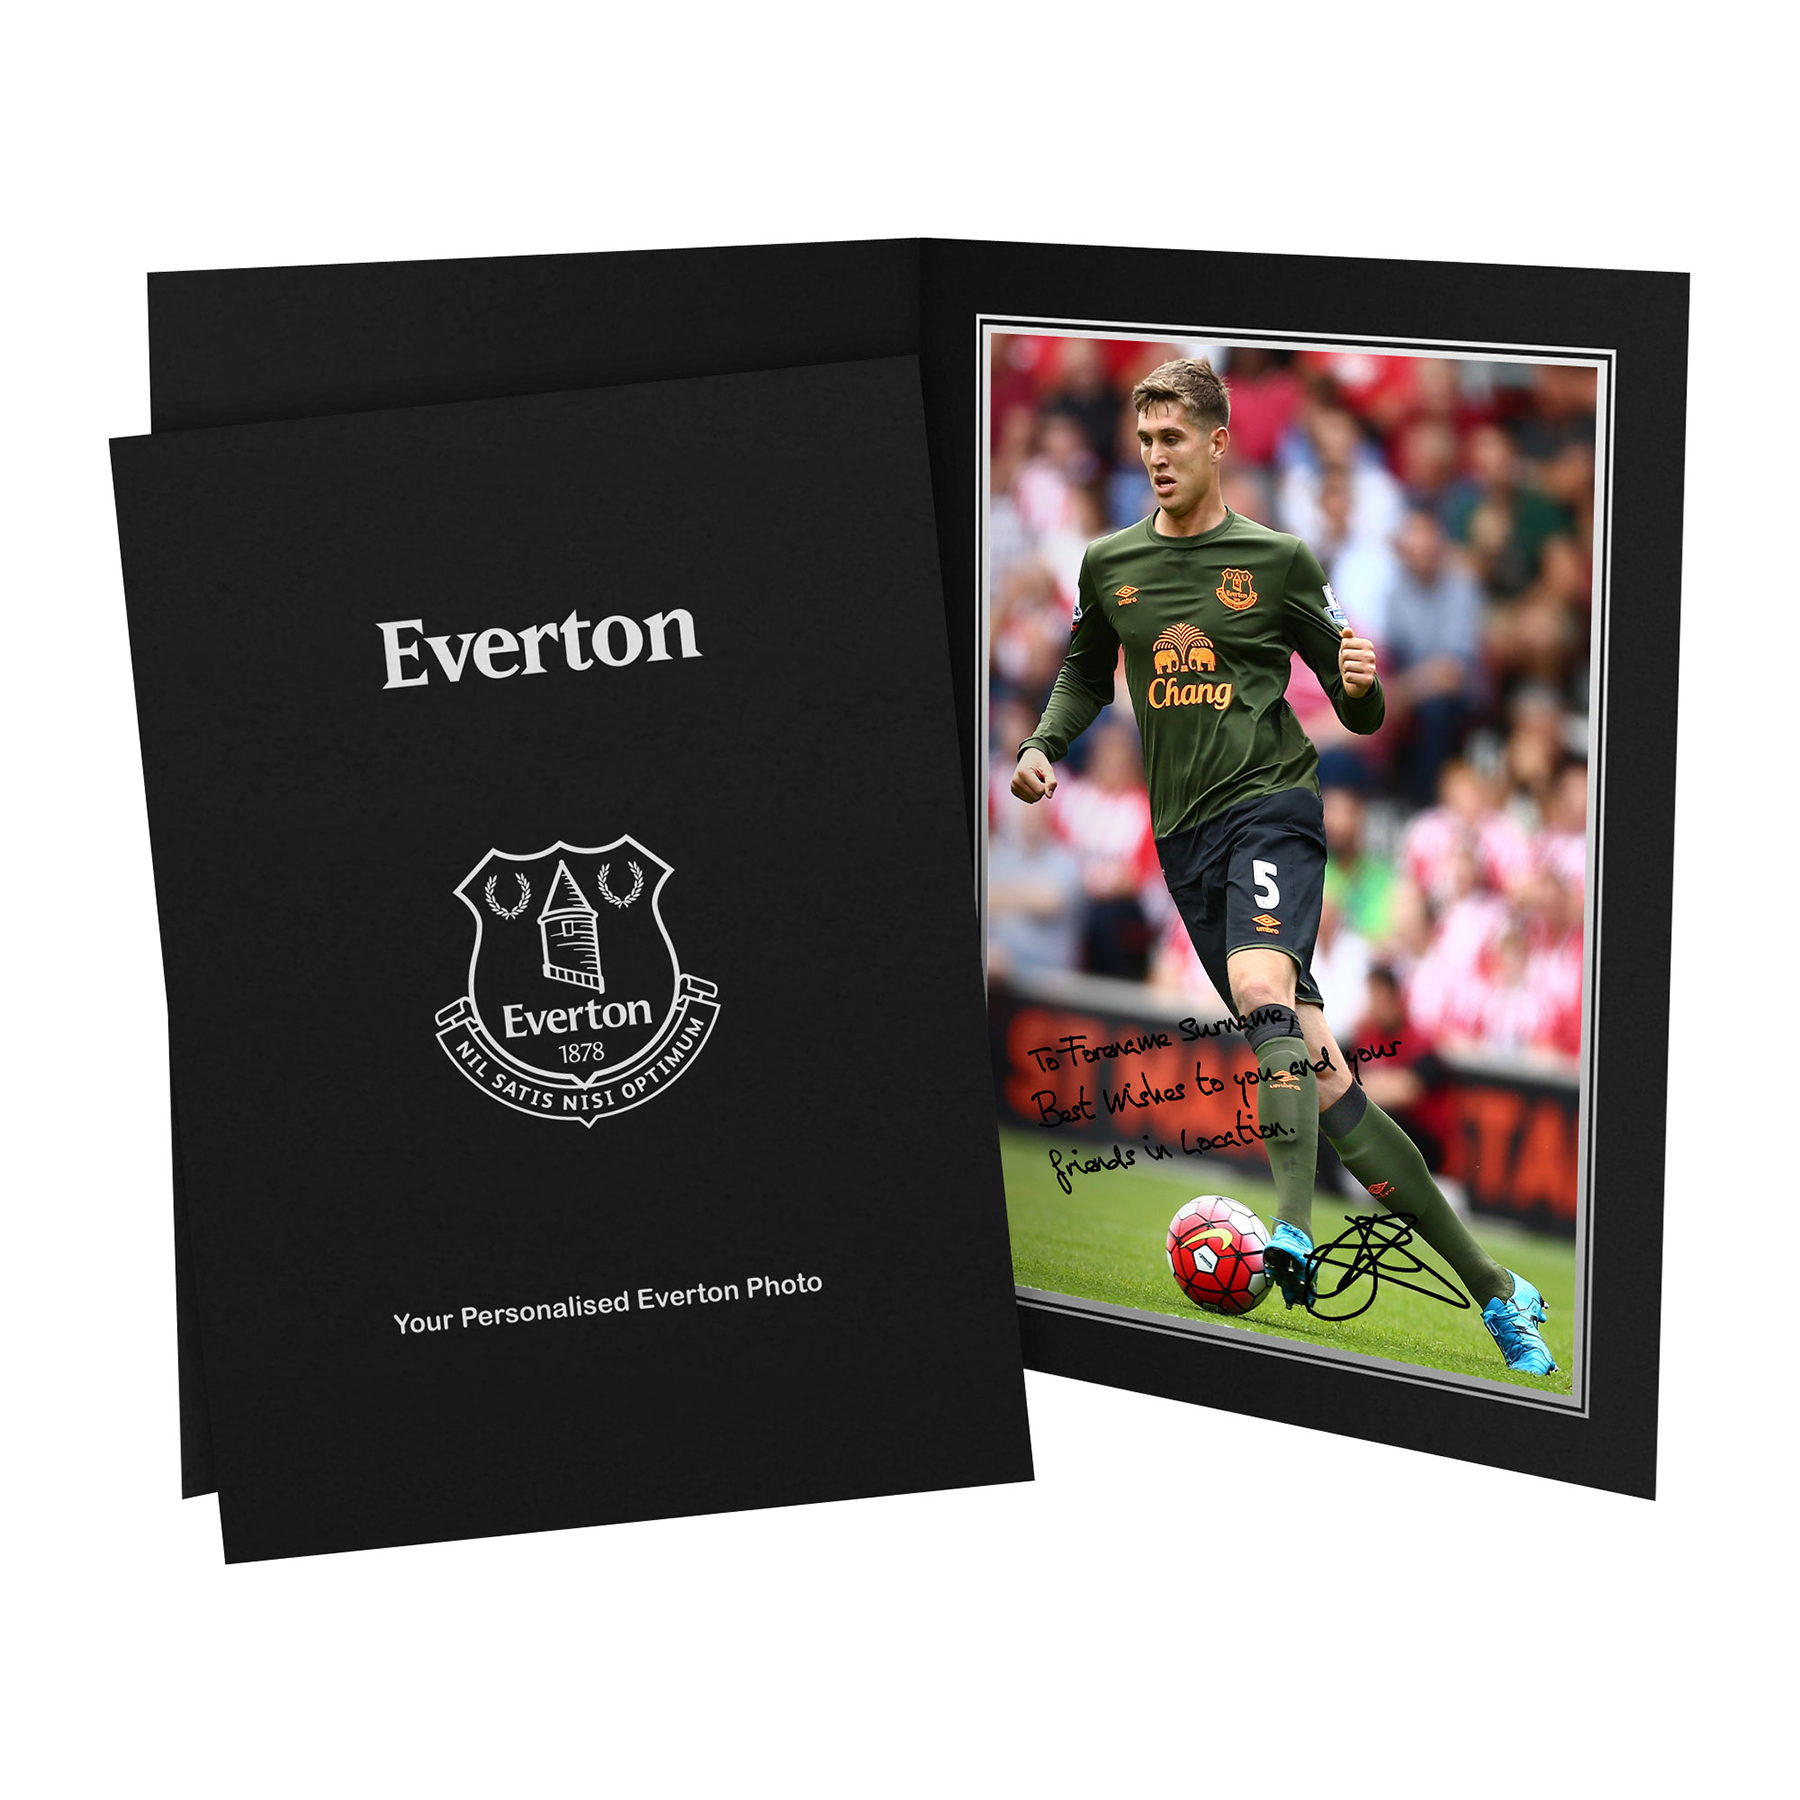 Everton Personalised Signature Photo in Presentation Folder - Stones